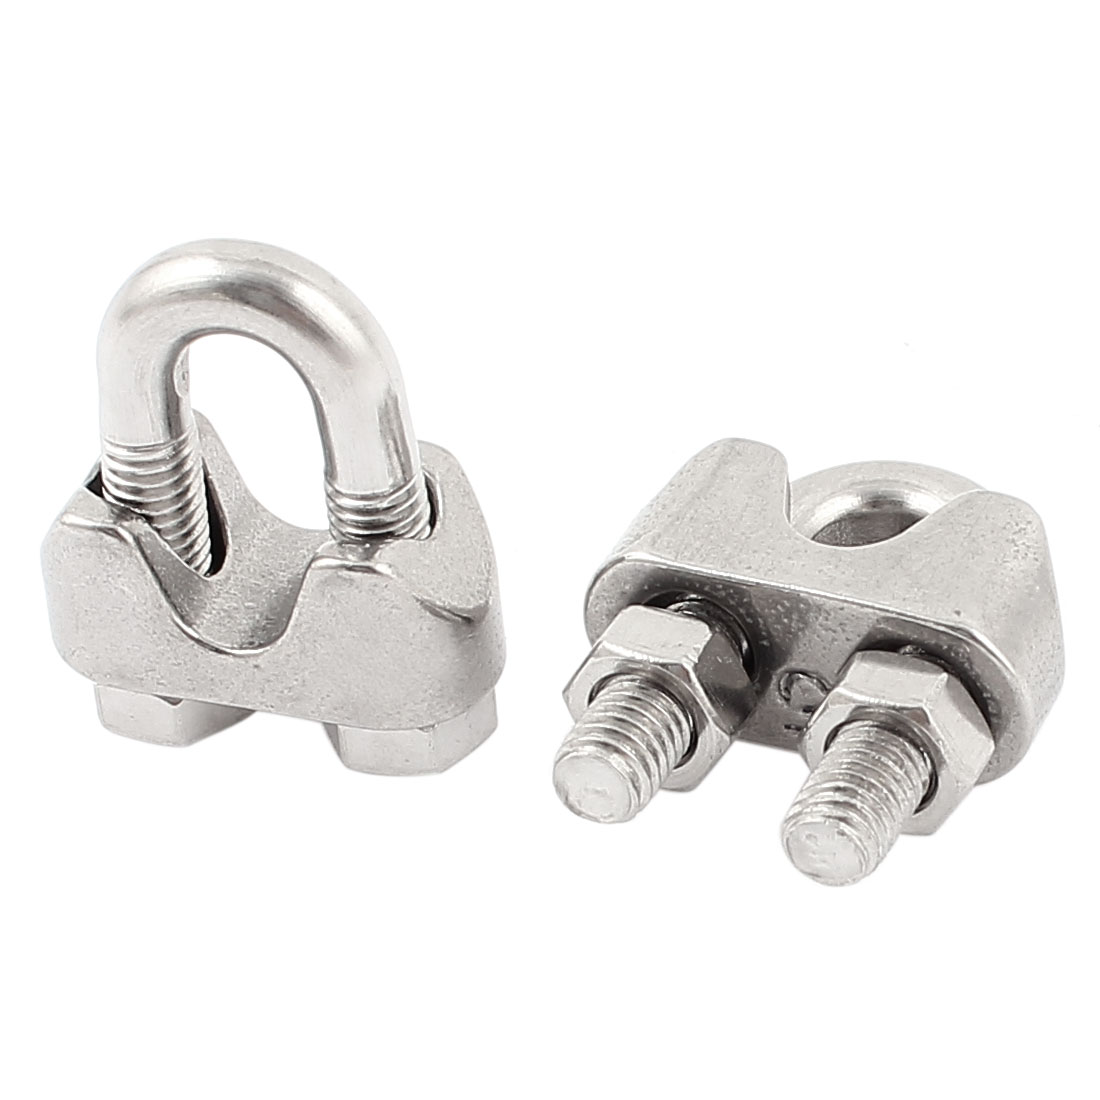 "3/16"" Stainless Steel Single Saddle Commercial Wire Rope Clip Cable Clamp 2pcs"